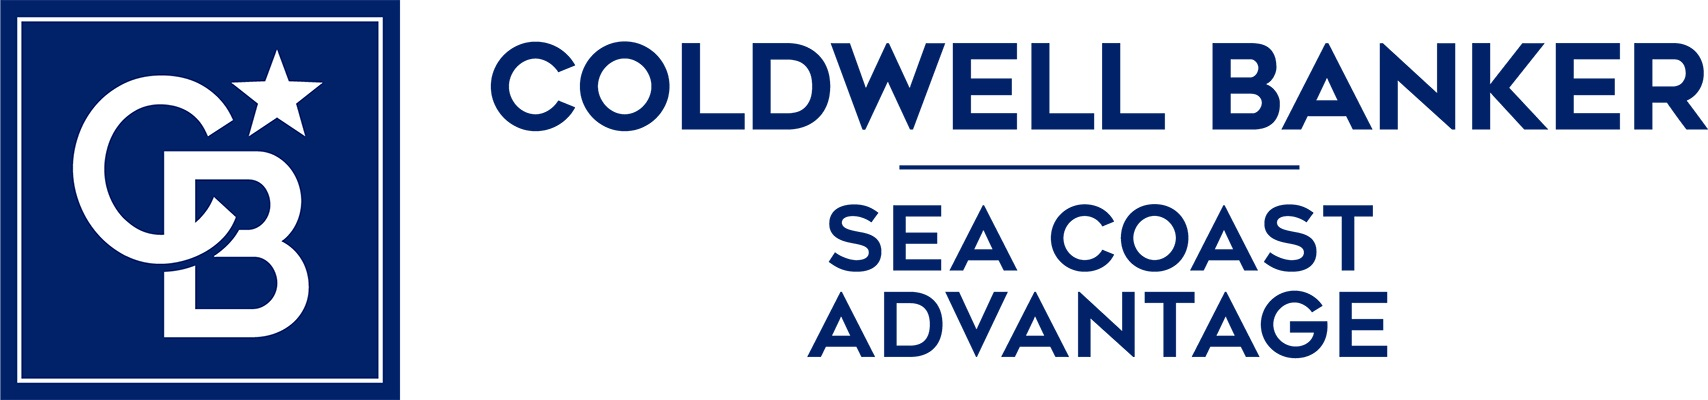 David Nye - Coldwell Banker Sea Coast Advantage Realty Logo